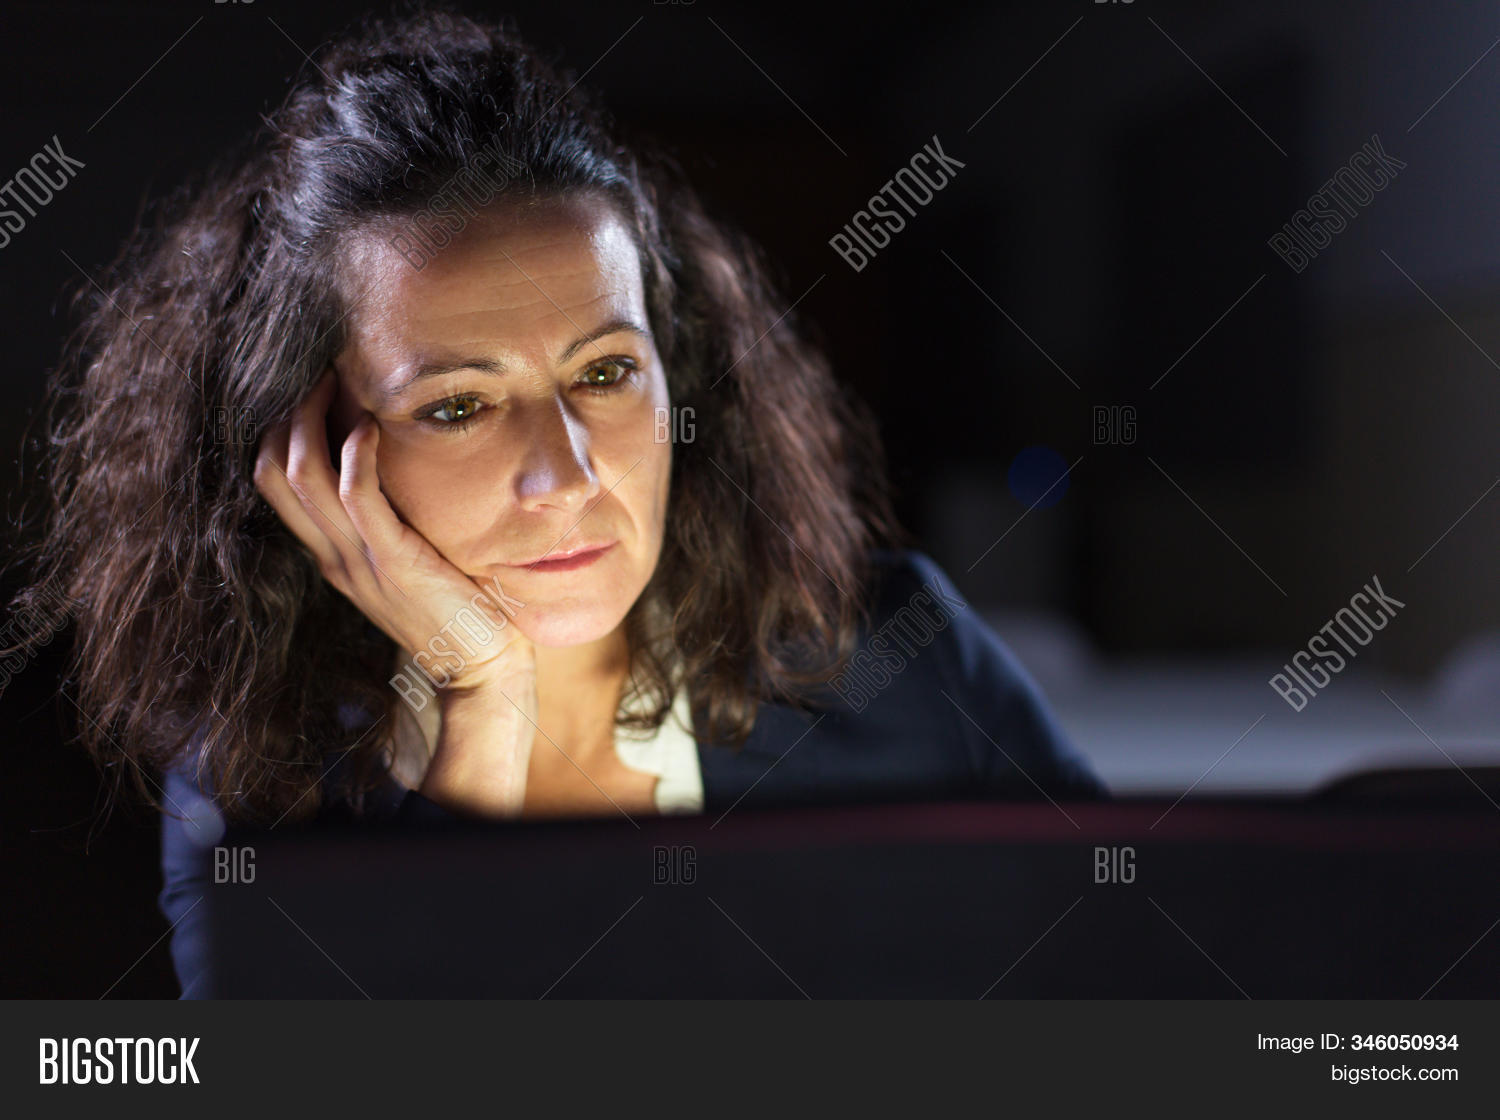 Tired Businesswoman Image Photo Free Trial Bigstock